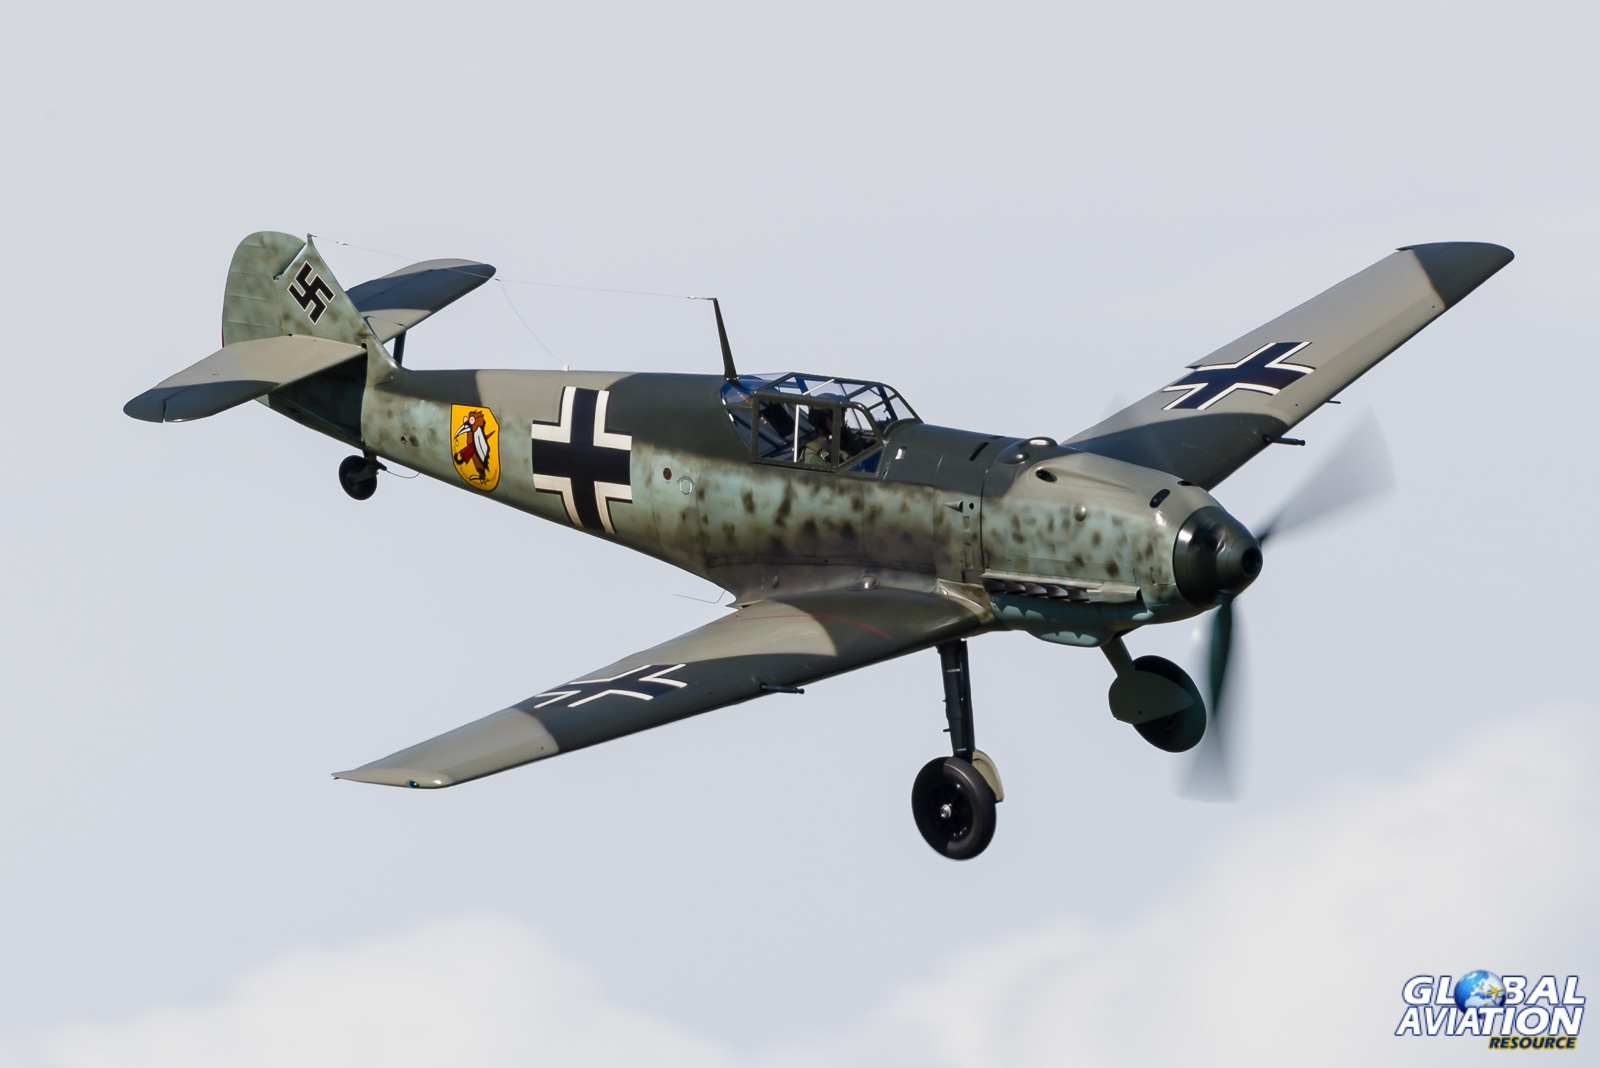 BF-109 at Paine Field © Rob Edgcumbe - Global Aviation Resource